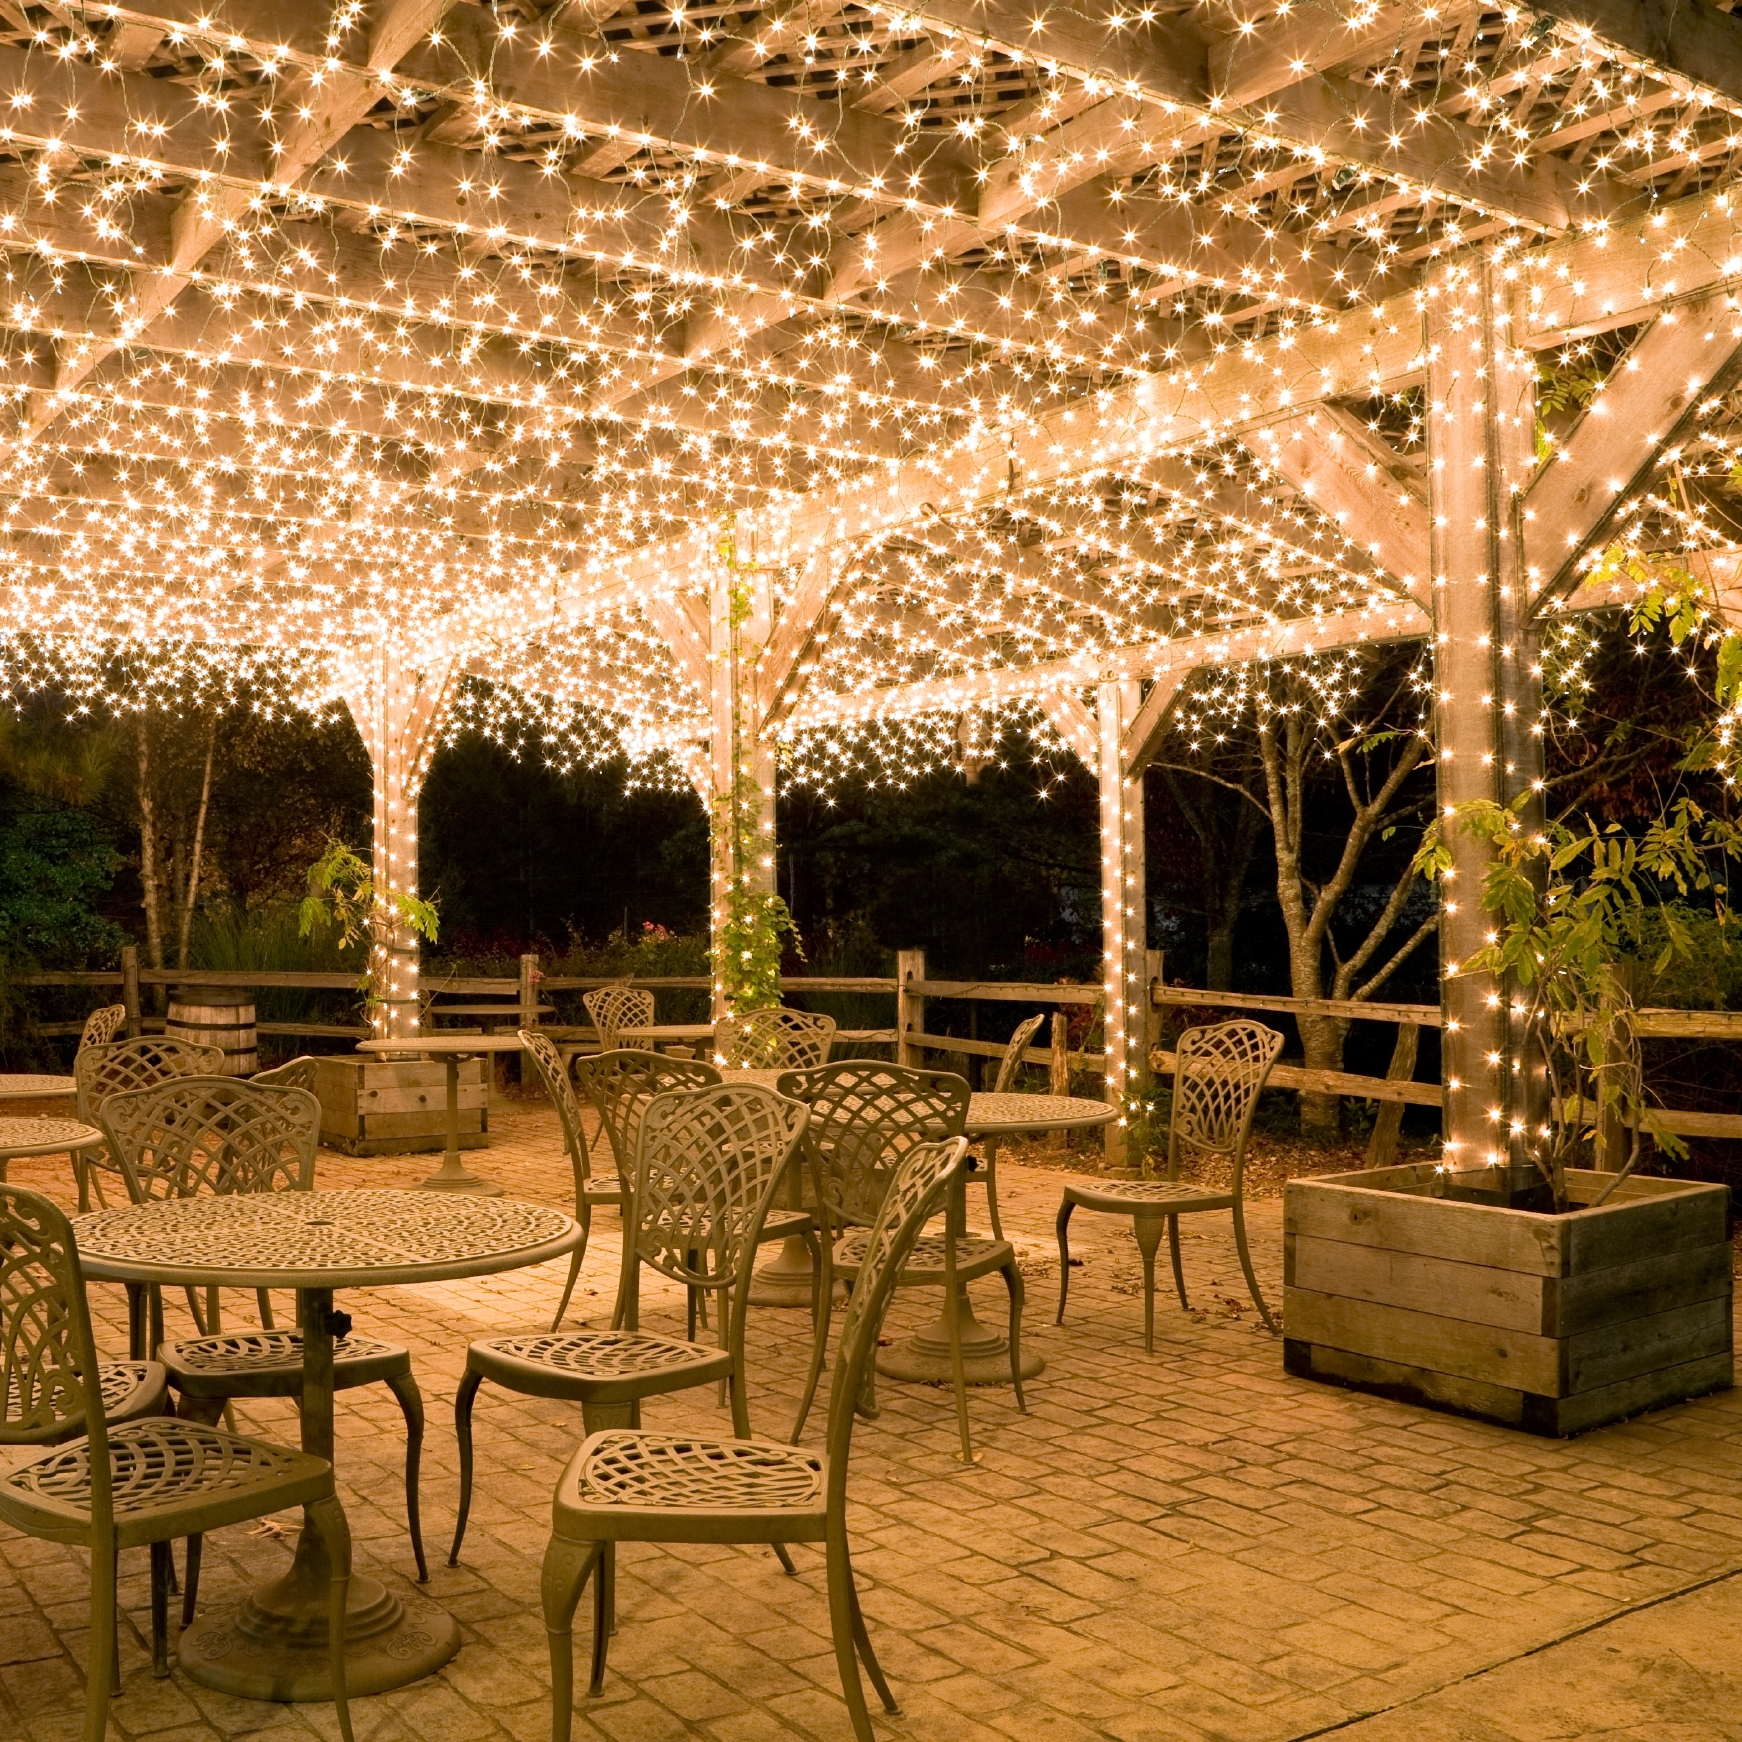 Solar Patio Lighting Ideas Outside Diy Outdoor Yard Landscape Pertaining To Current Outdoor Yard Lanterns (Gallery 12 of 20)